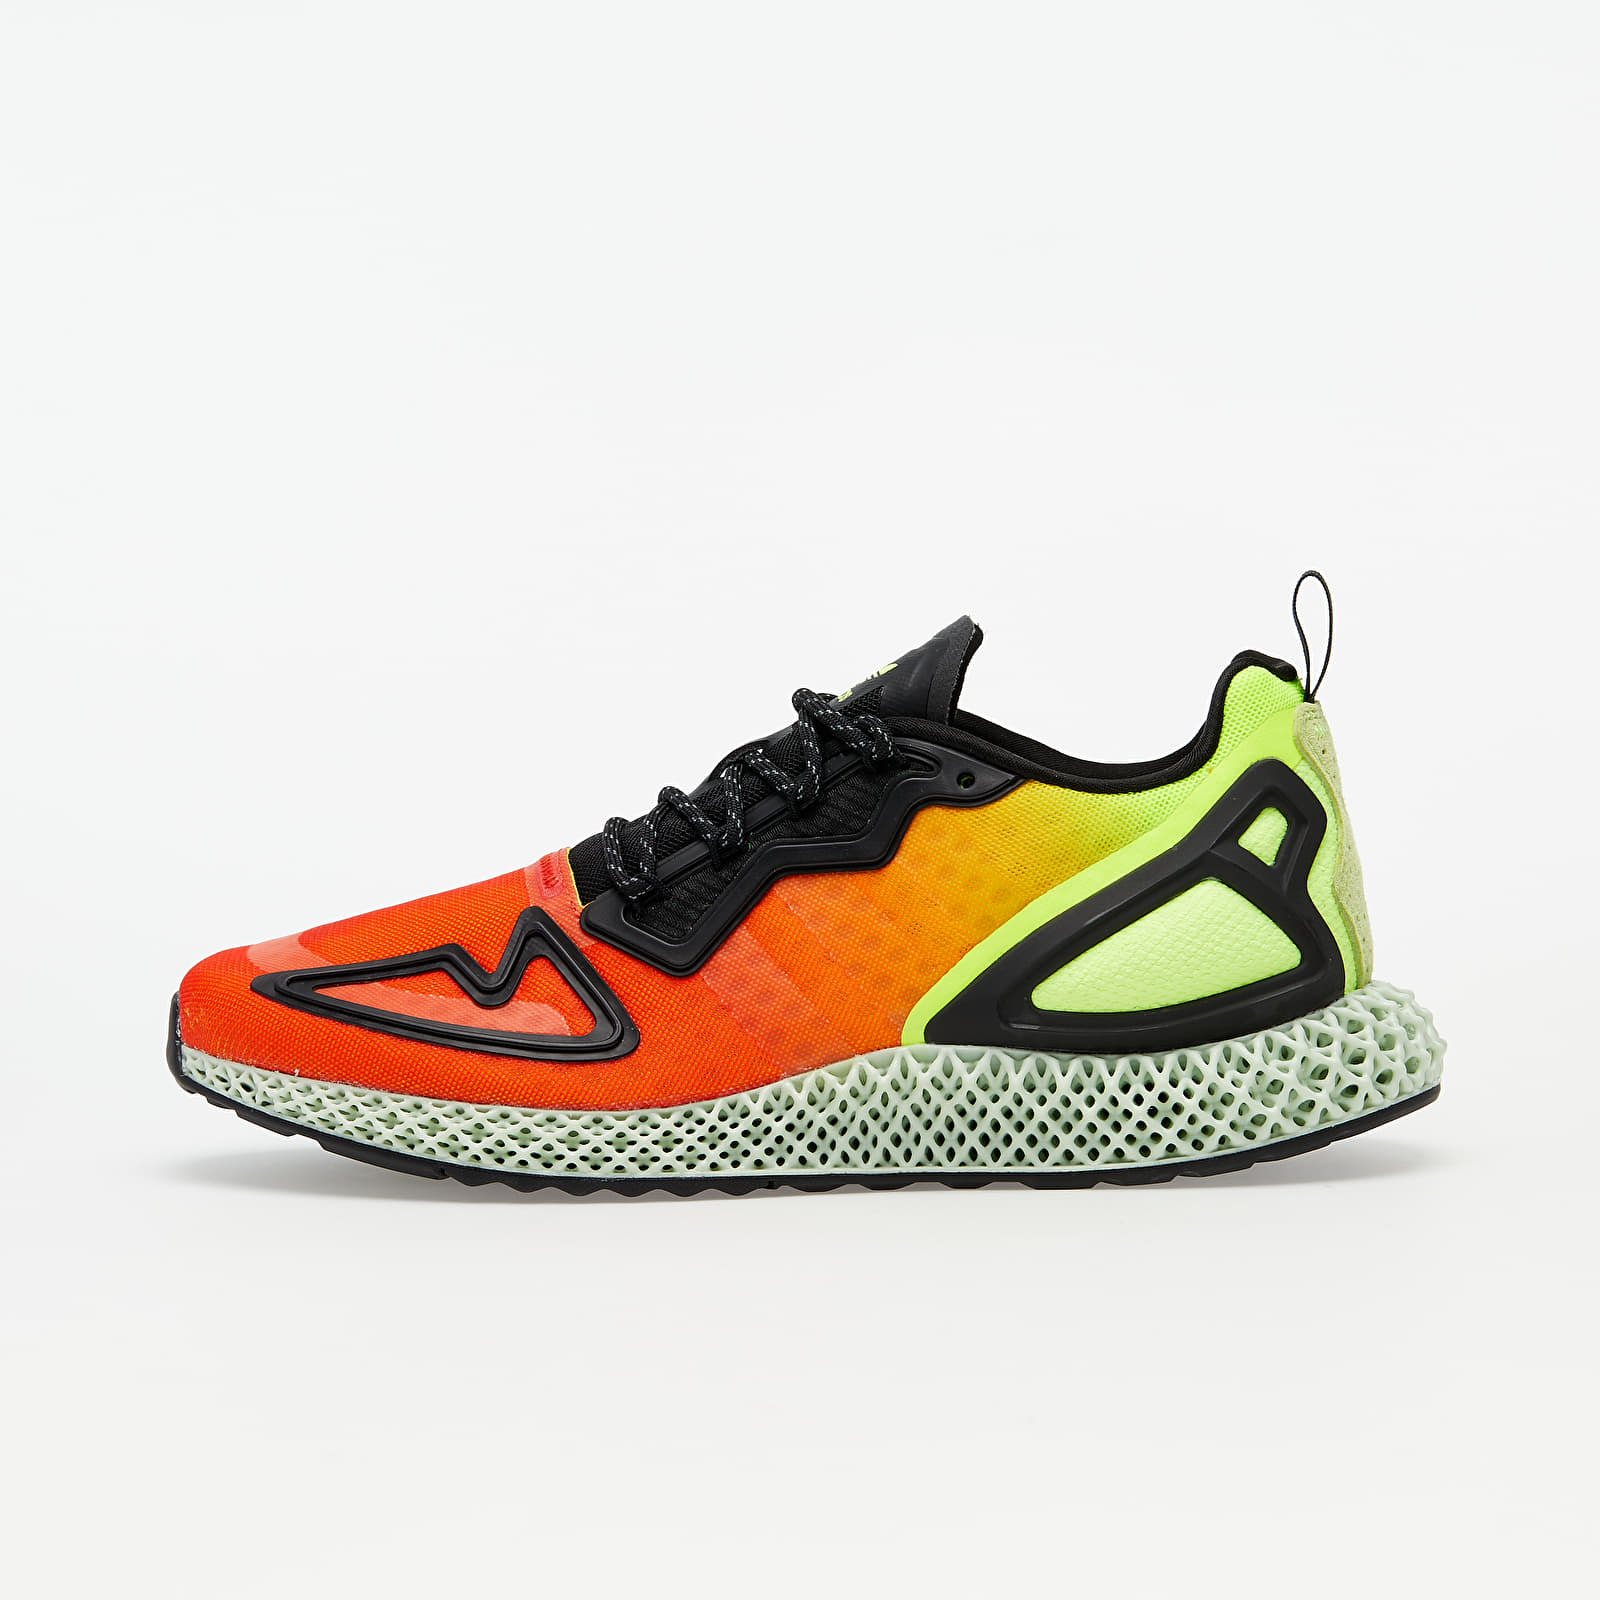 Men's shoes adidas ZX 2K 4D Solar Yellow/ Hi-Res Red/ Core Black